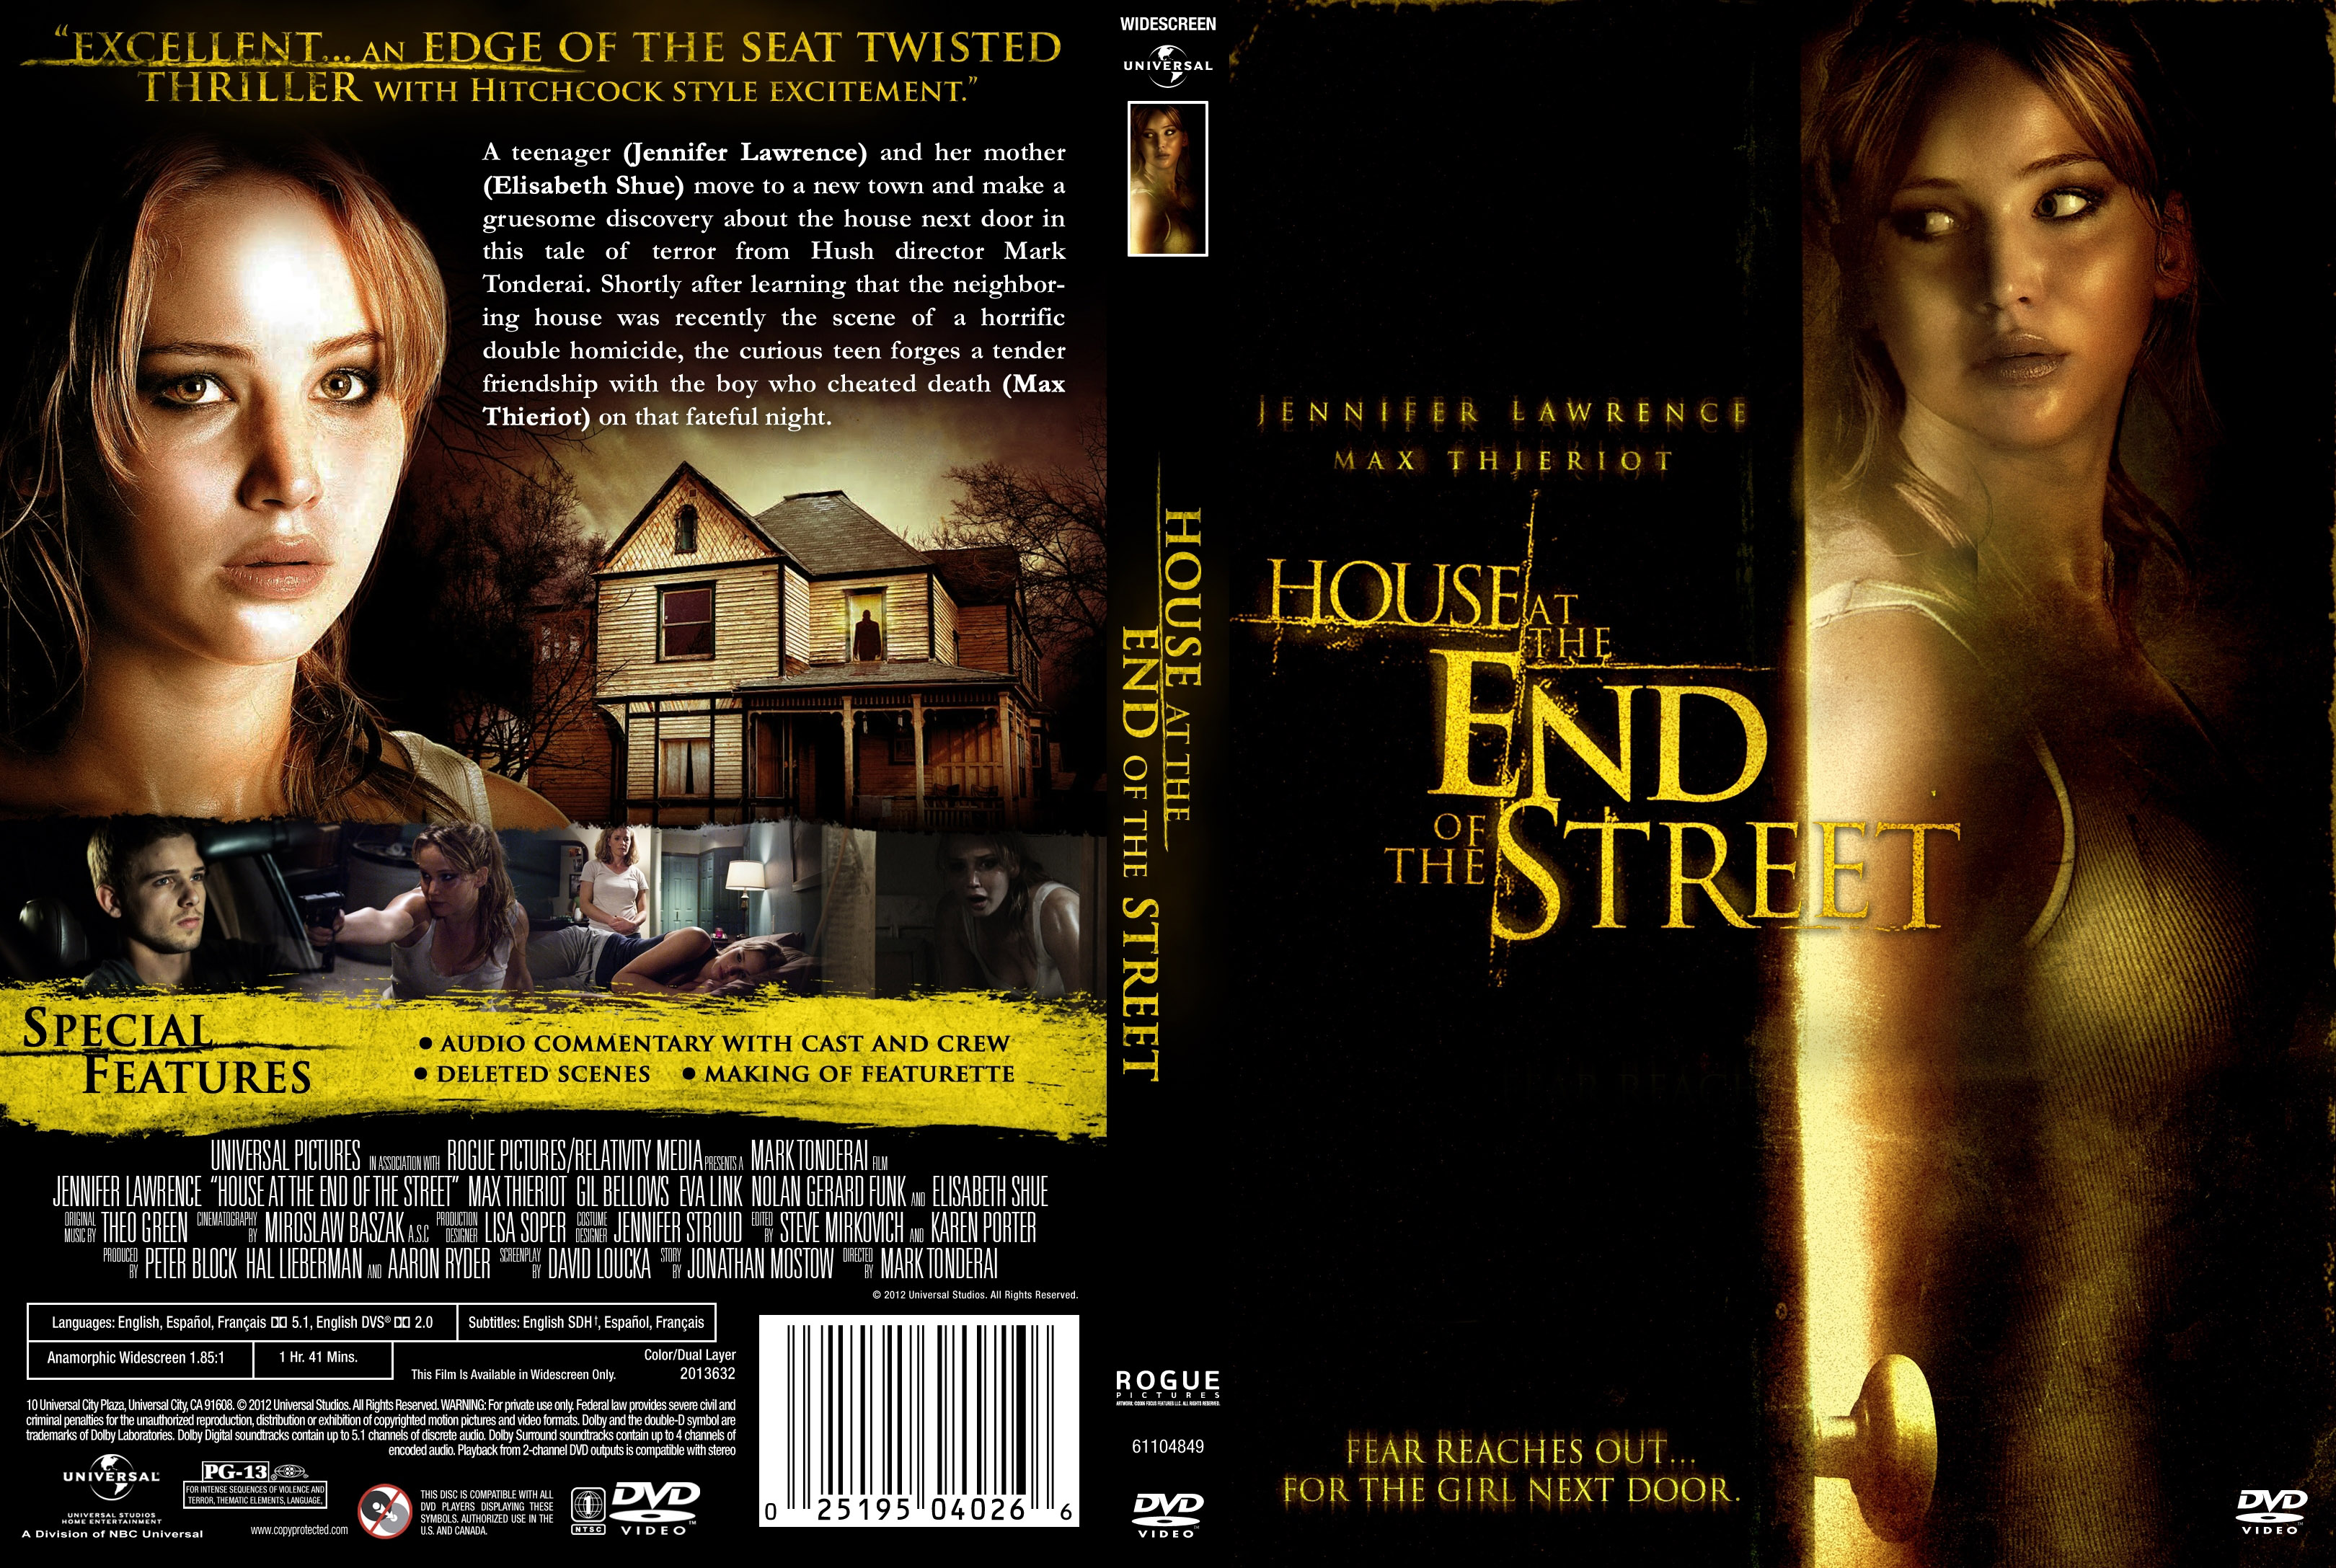 House at the End of the Street | German DVD Covers